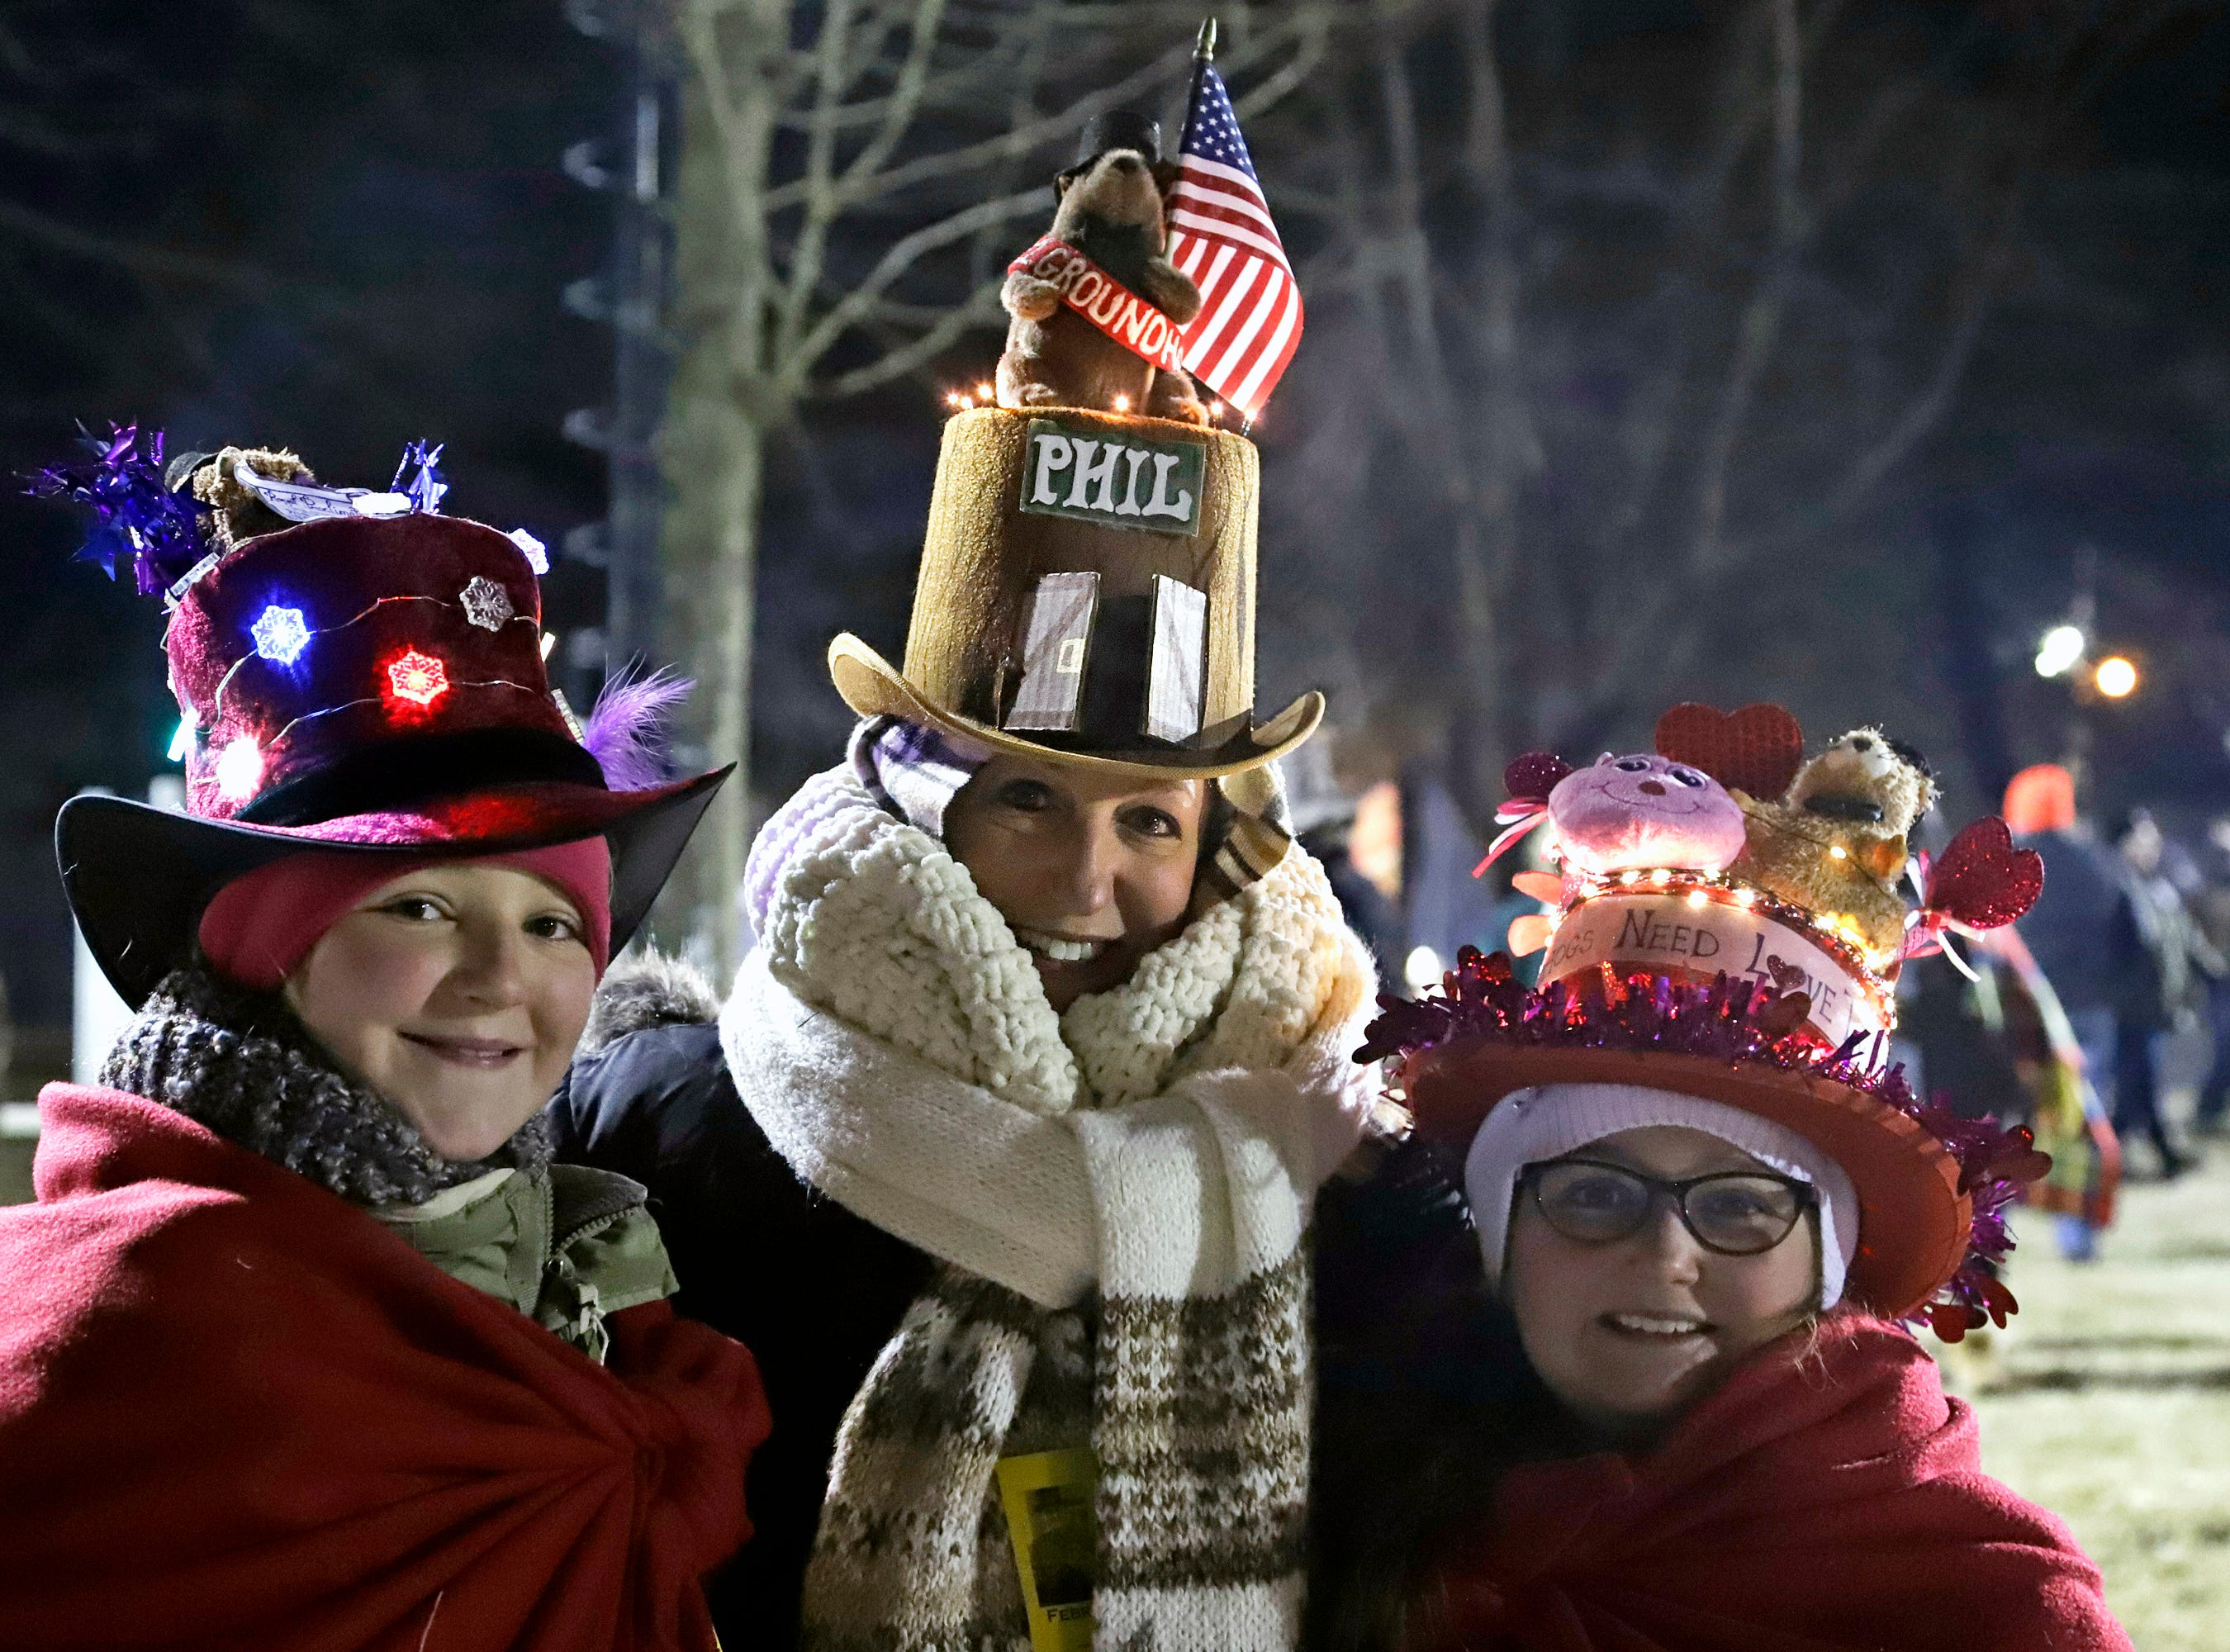 Lisa Gibson, center, and her daughters Josie, left, and AneGiguere of Pittsburgh, arrive early to celebrate the 133rd Groundhog Day on Gobbler's Knob in Punxsutawney, Pa. Saturday, Feb. 2, 2019. It is the second Groundhog Day trek to Gobbler's Knob for the family. (AP Photo/Gene J. Puskar)